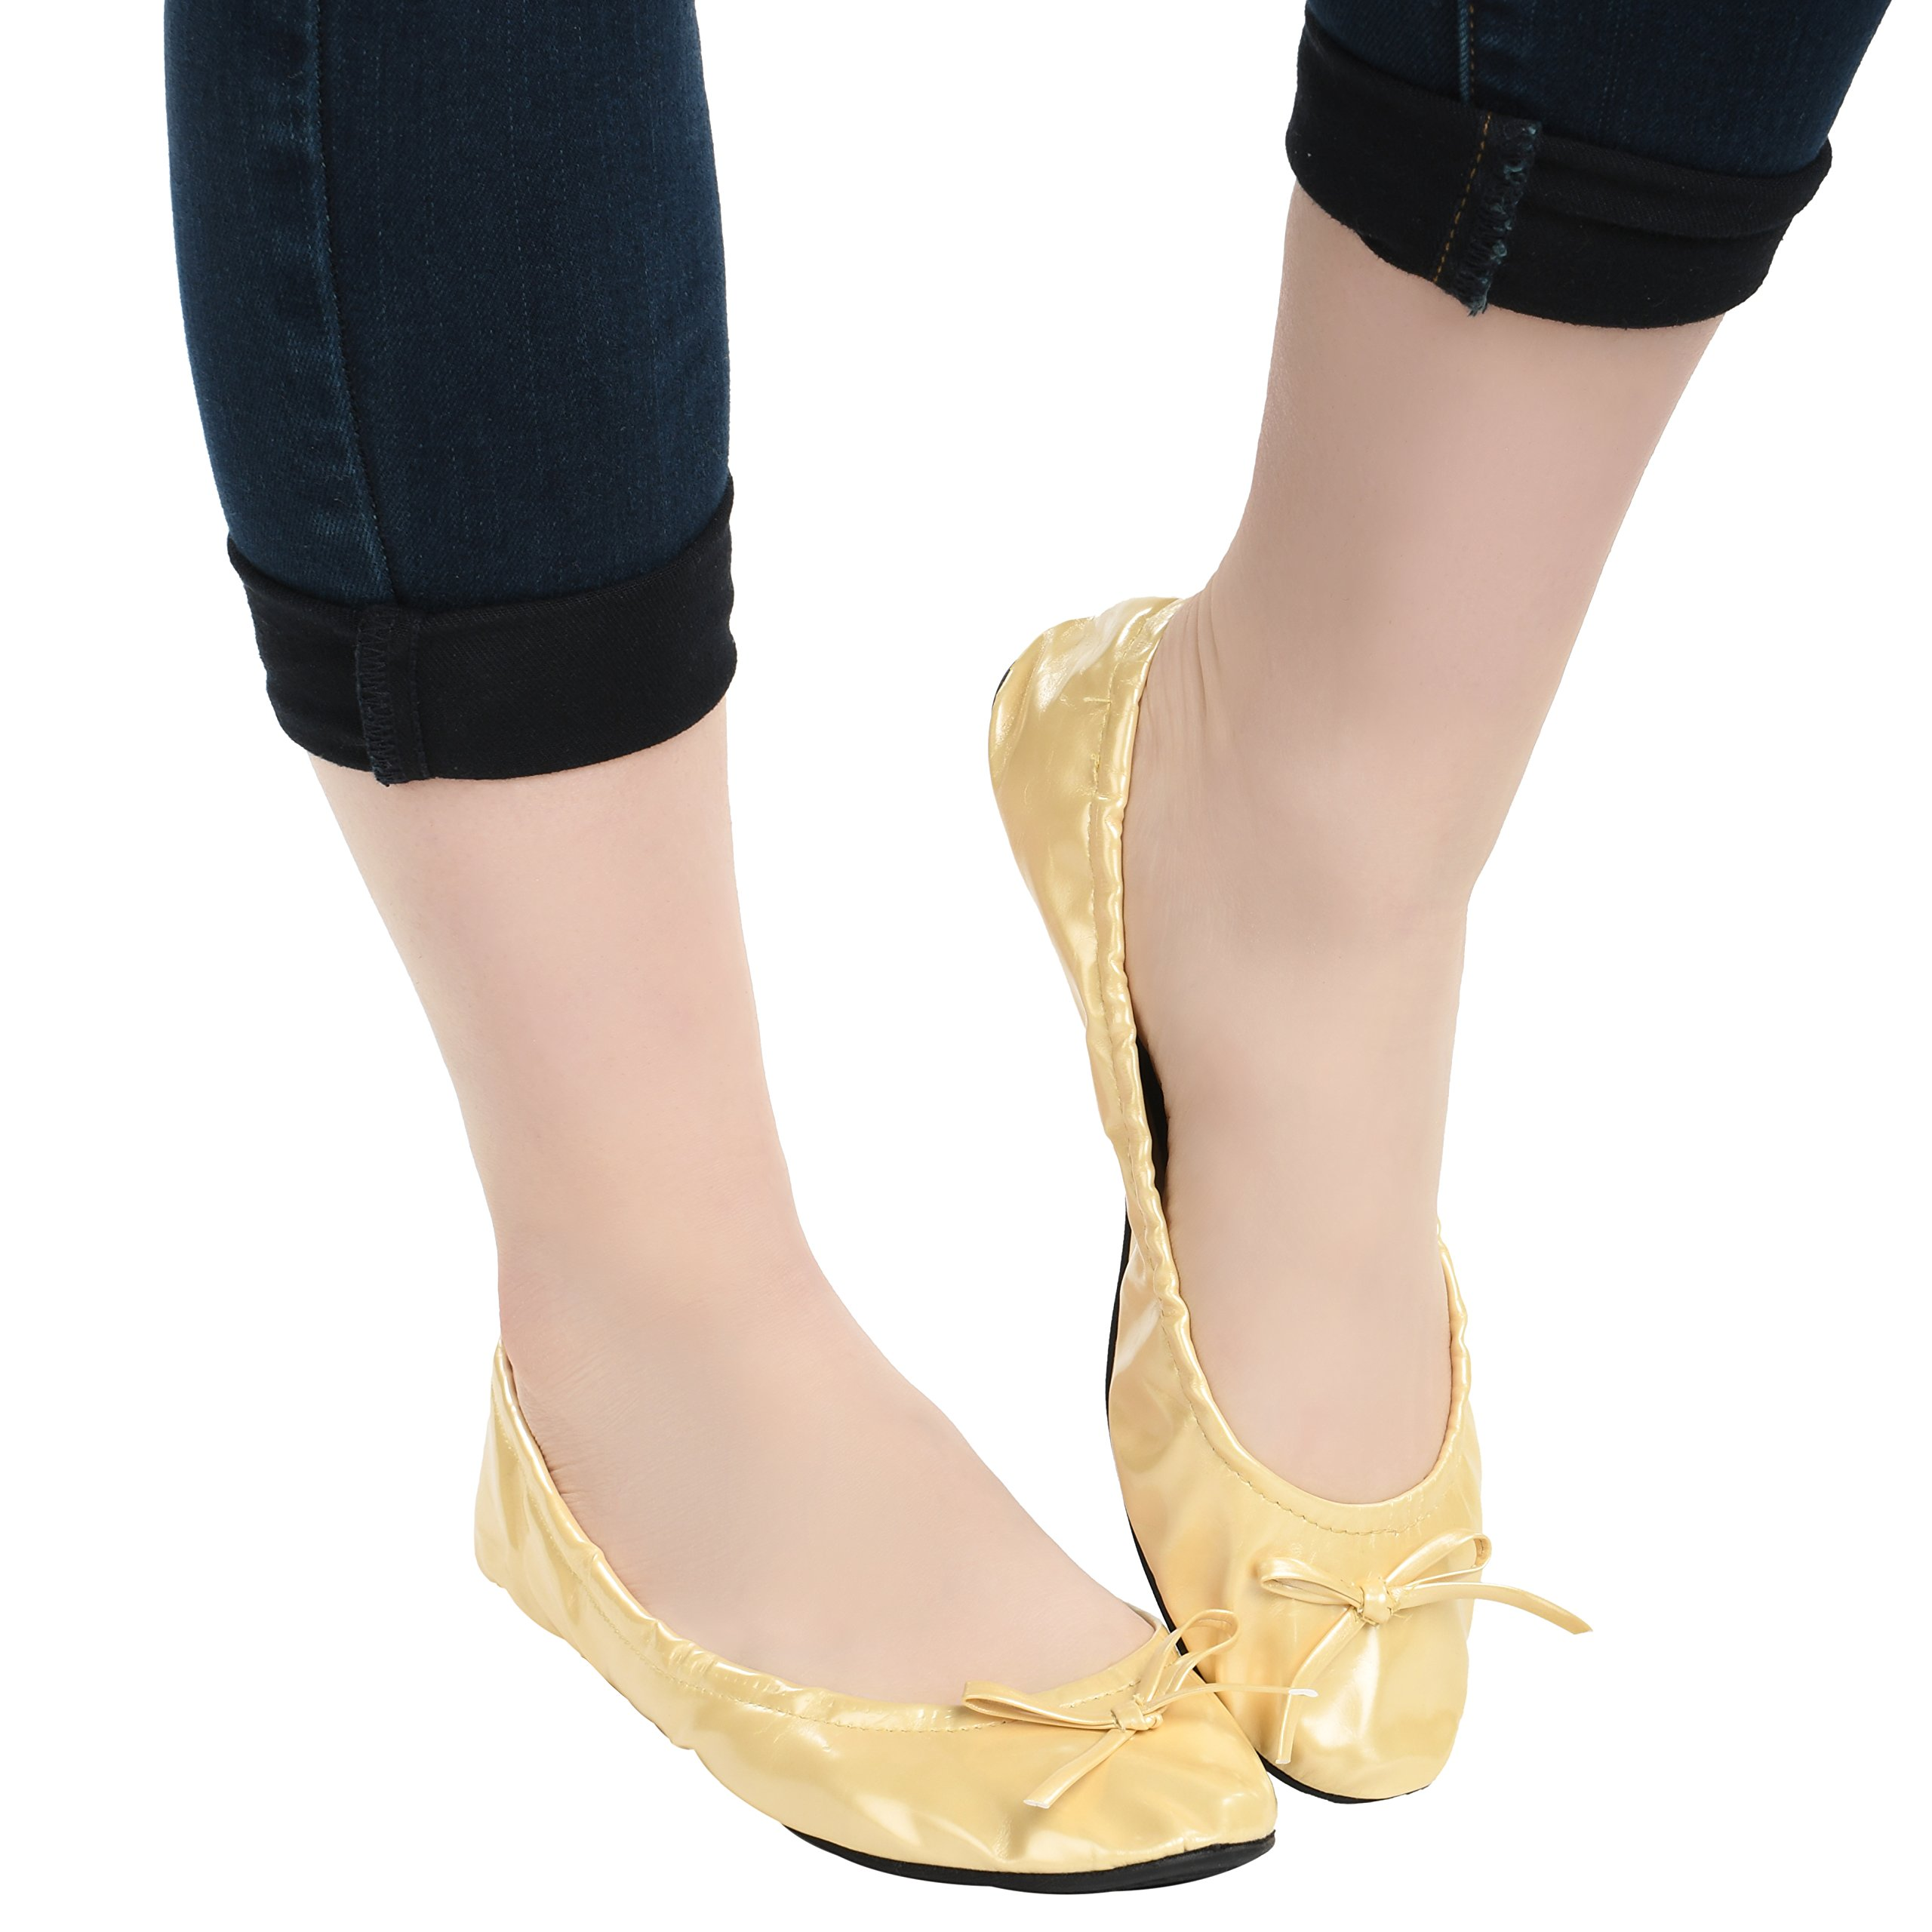 Island Wear Women's Foldable Ballet Flats Travel Shoes with Carrying Clutch Case (Beige, Medium)